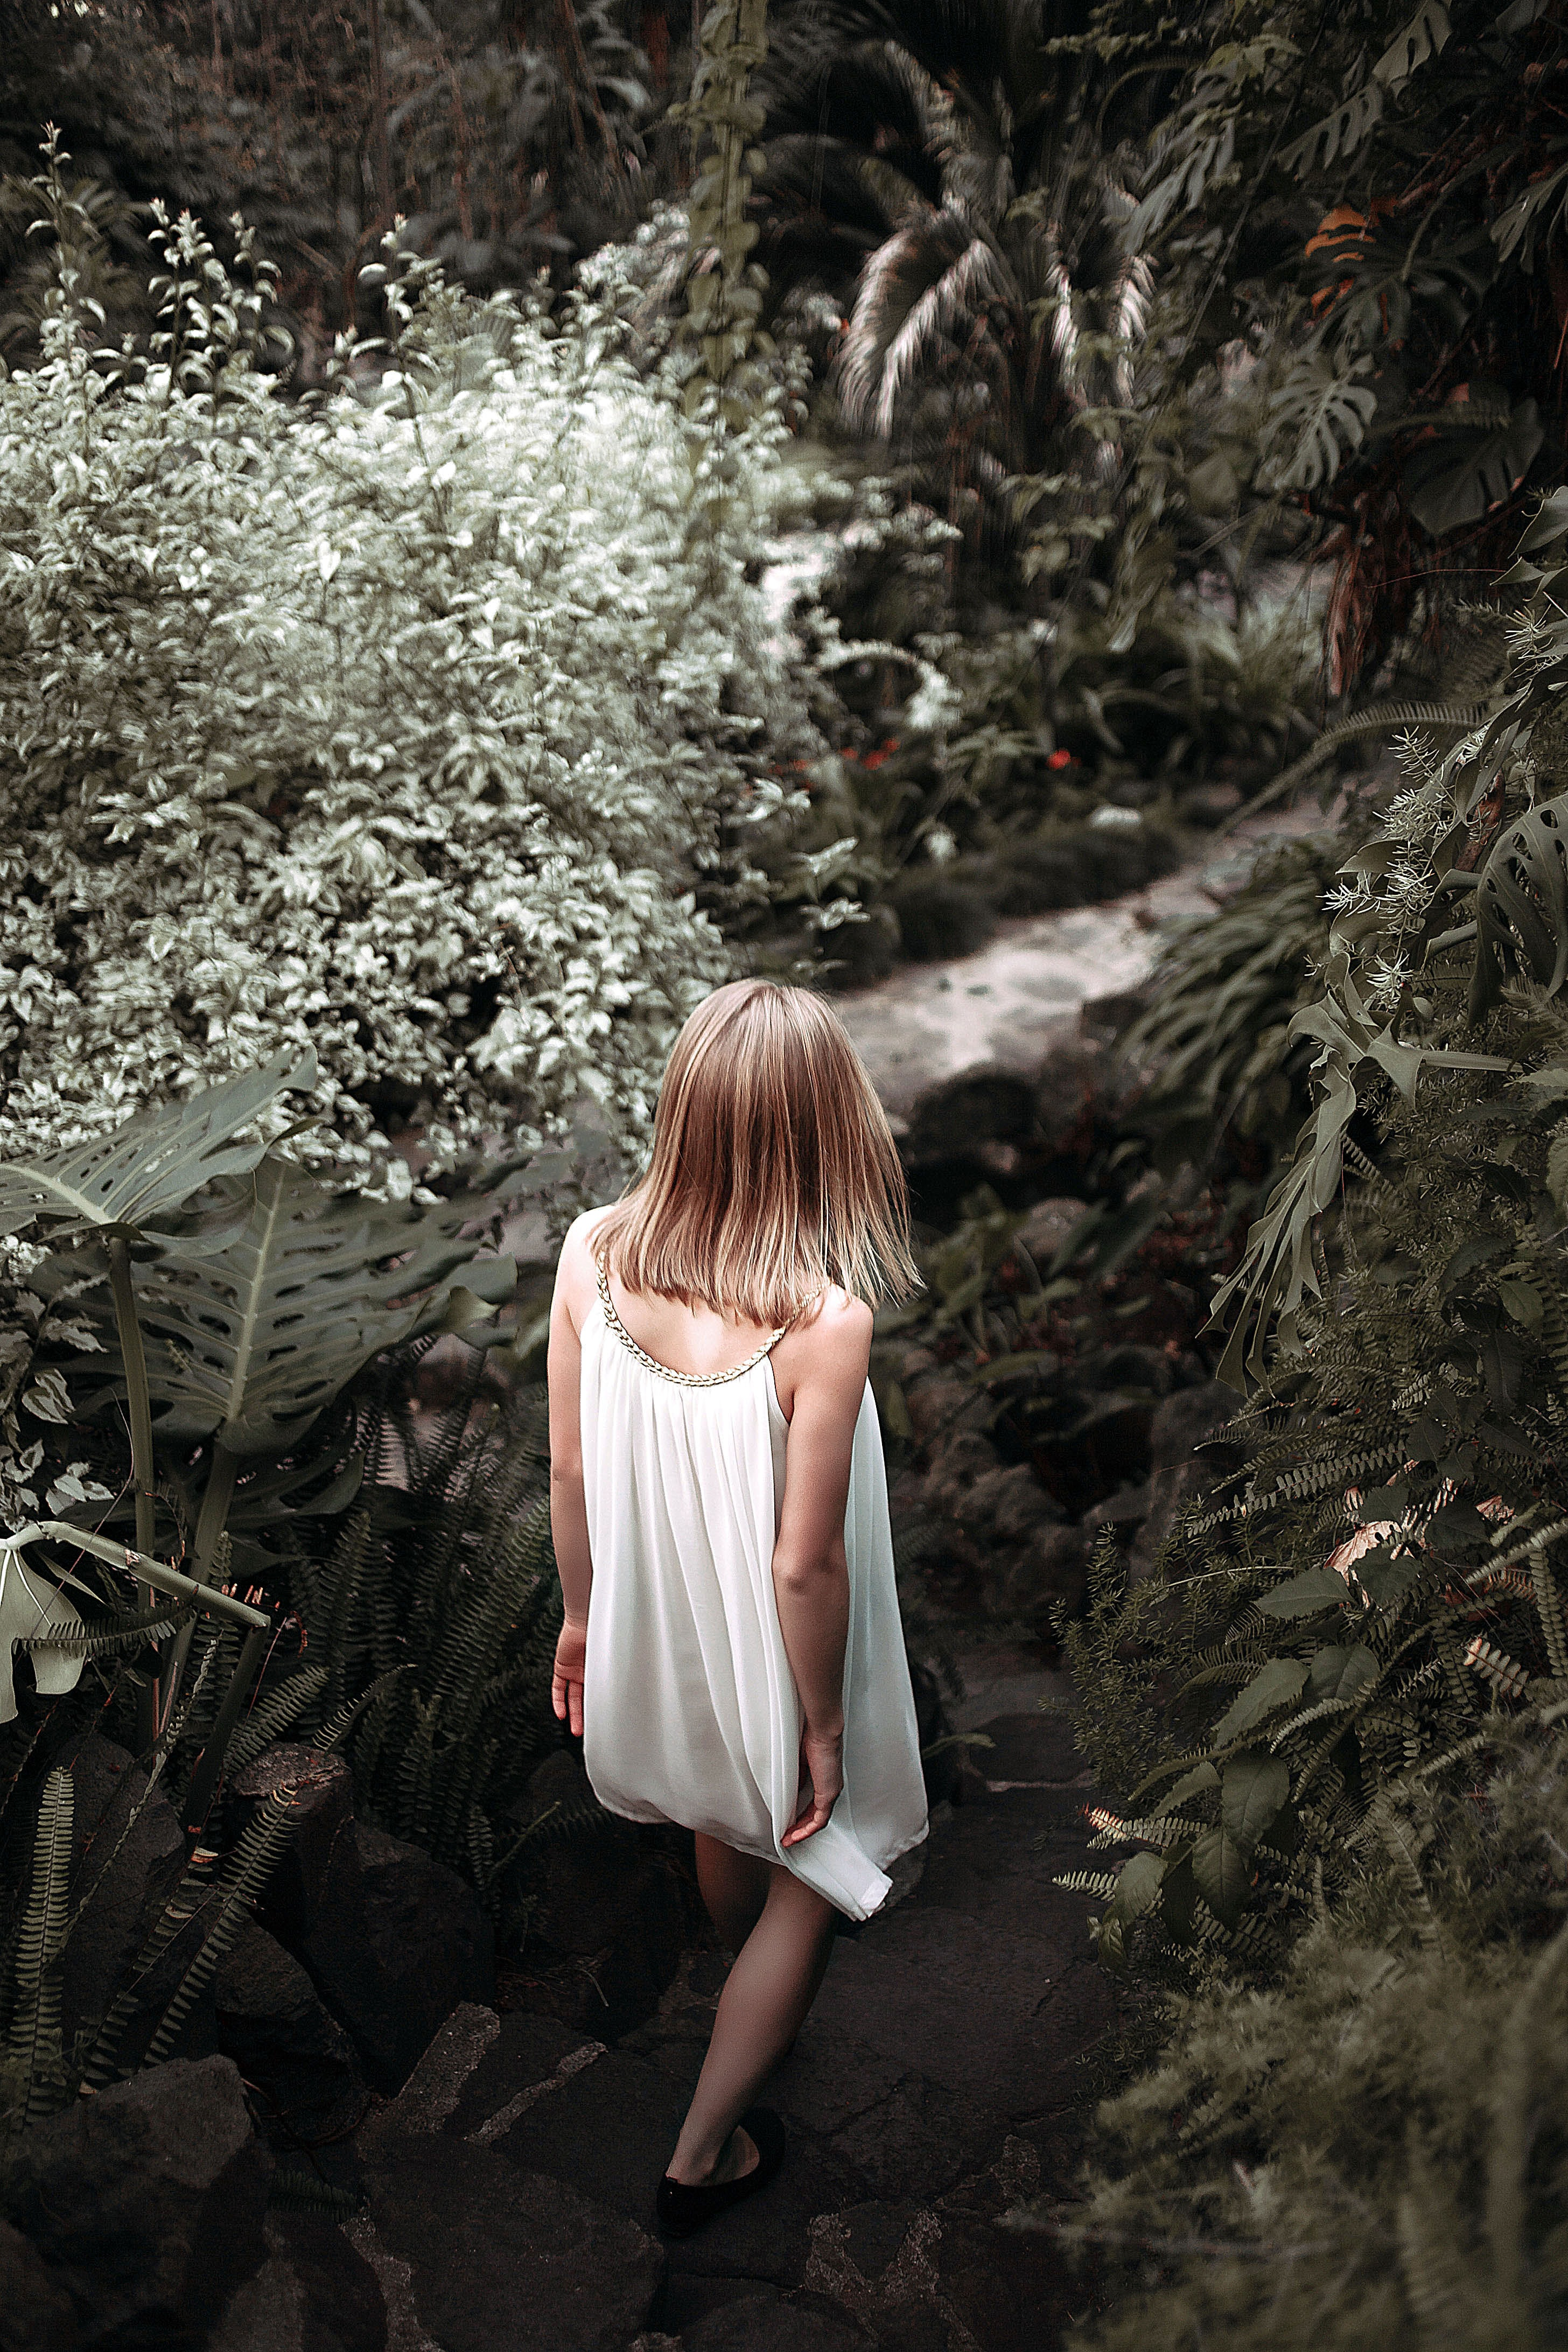 Girl exploring whimsical woods alone